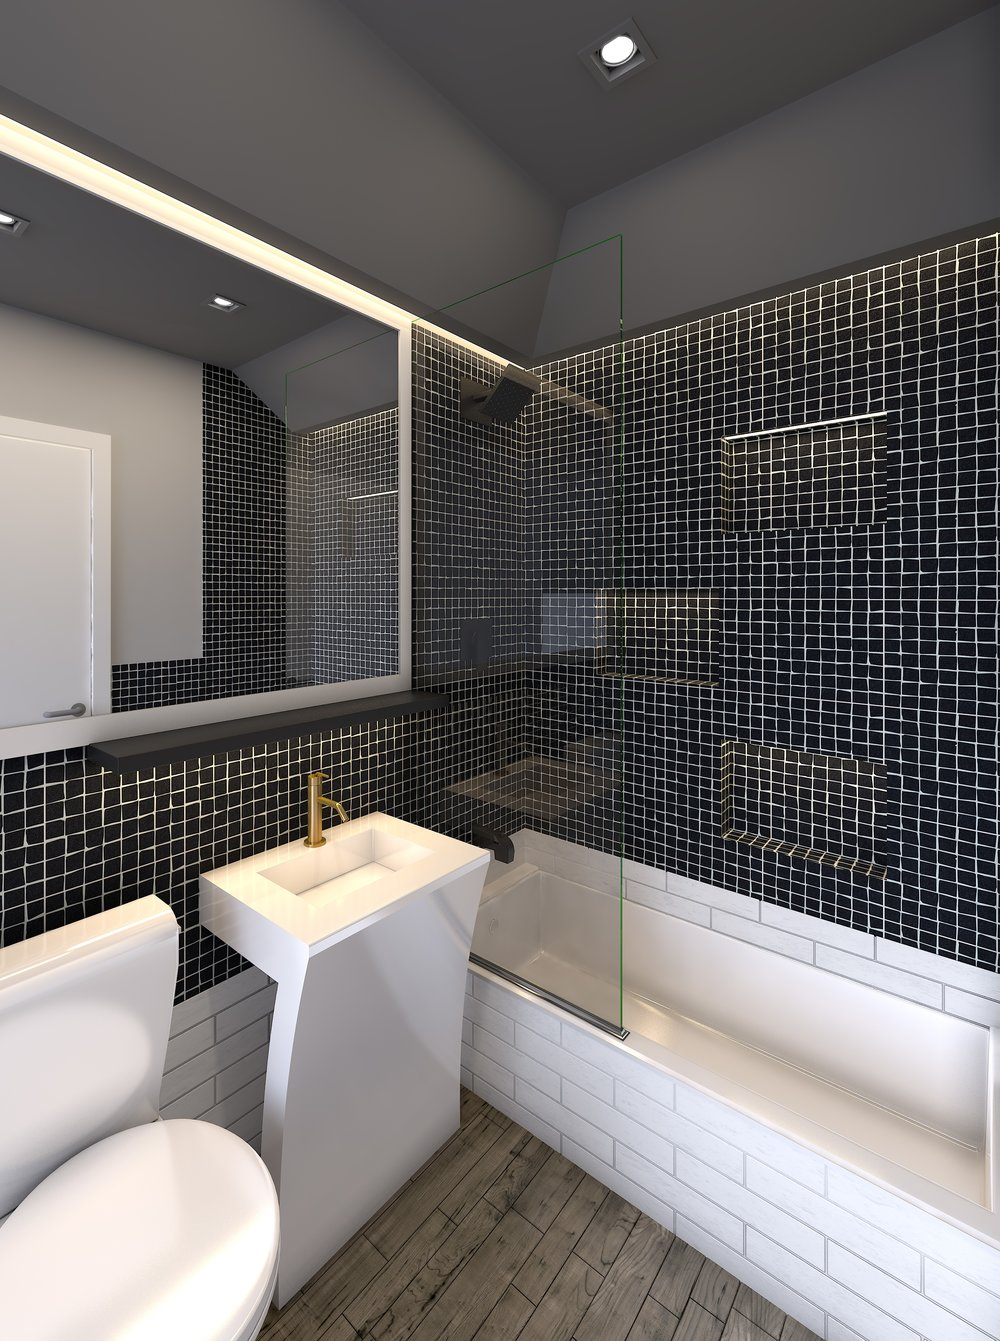 688-690 Bathroom Draft 6.25.15 veiw 1.jpg